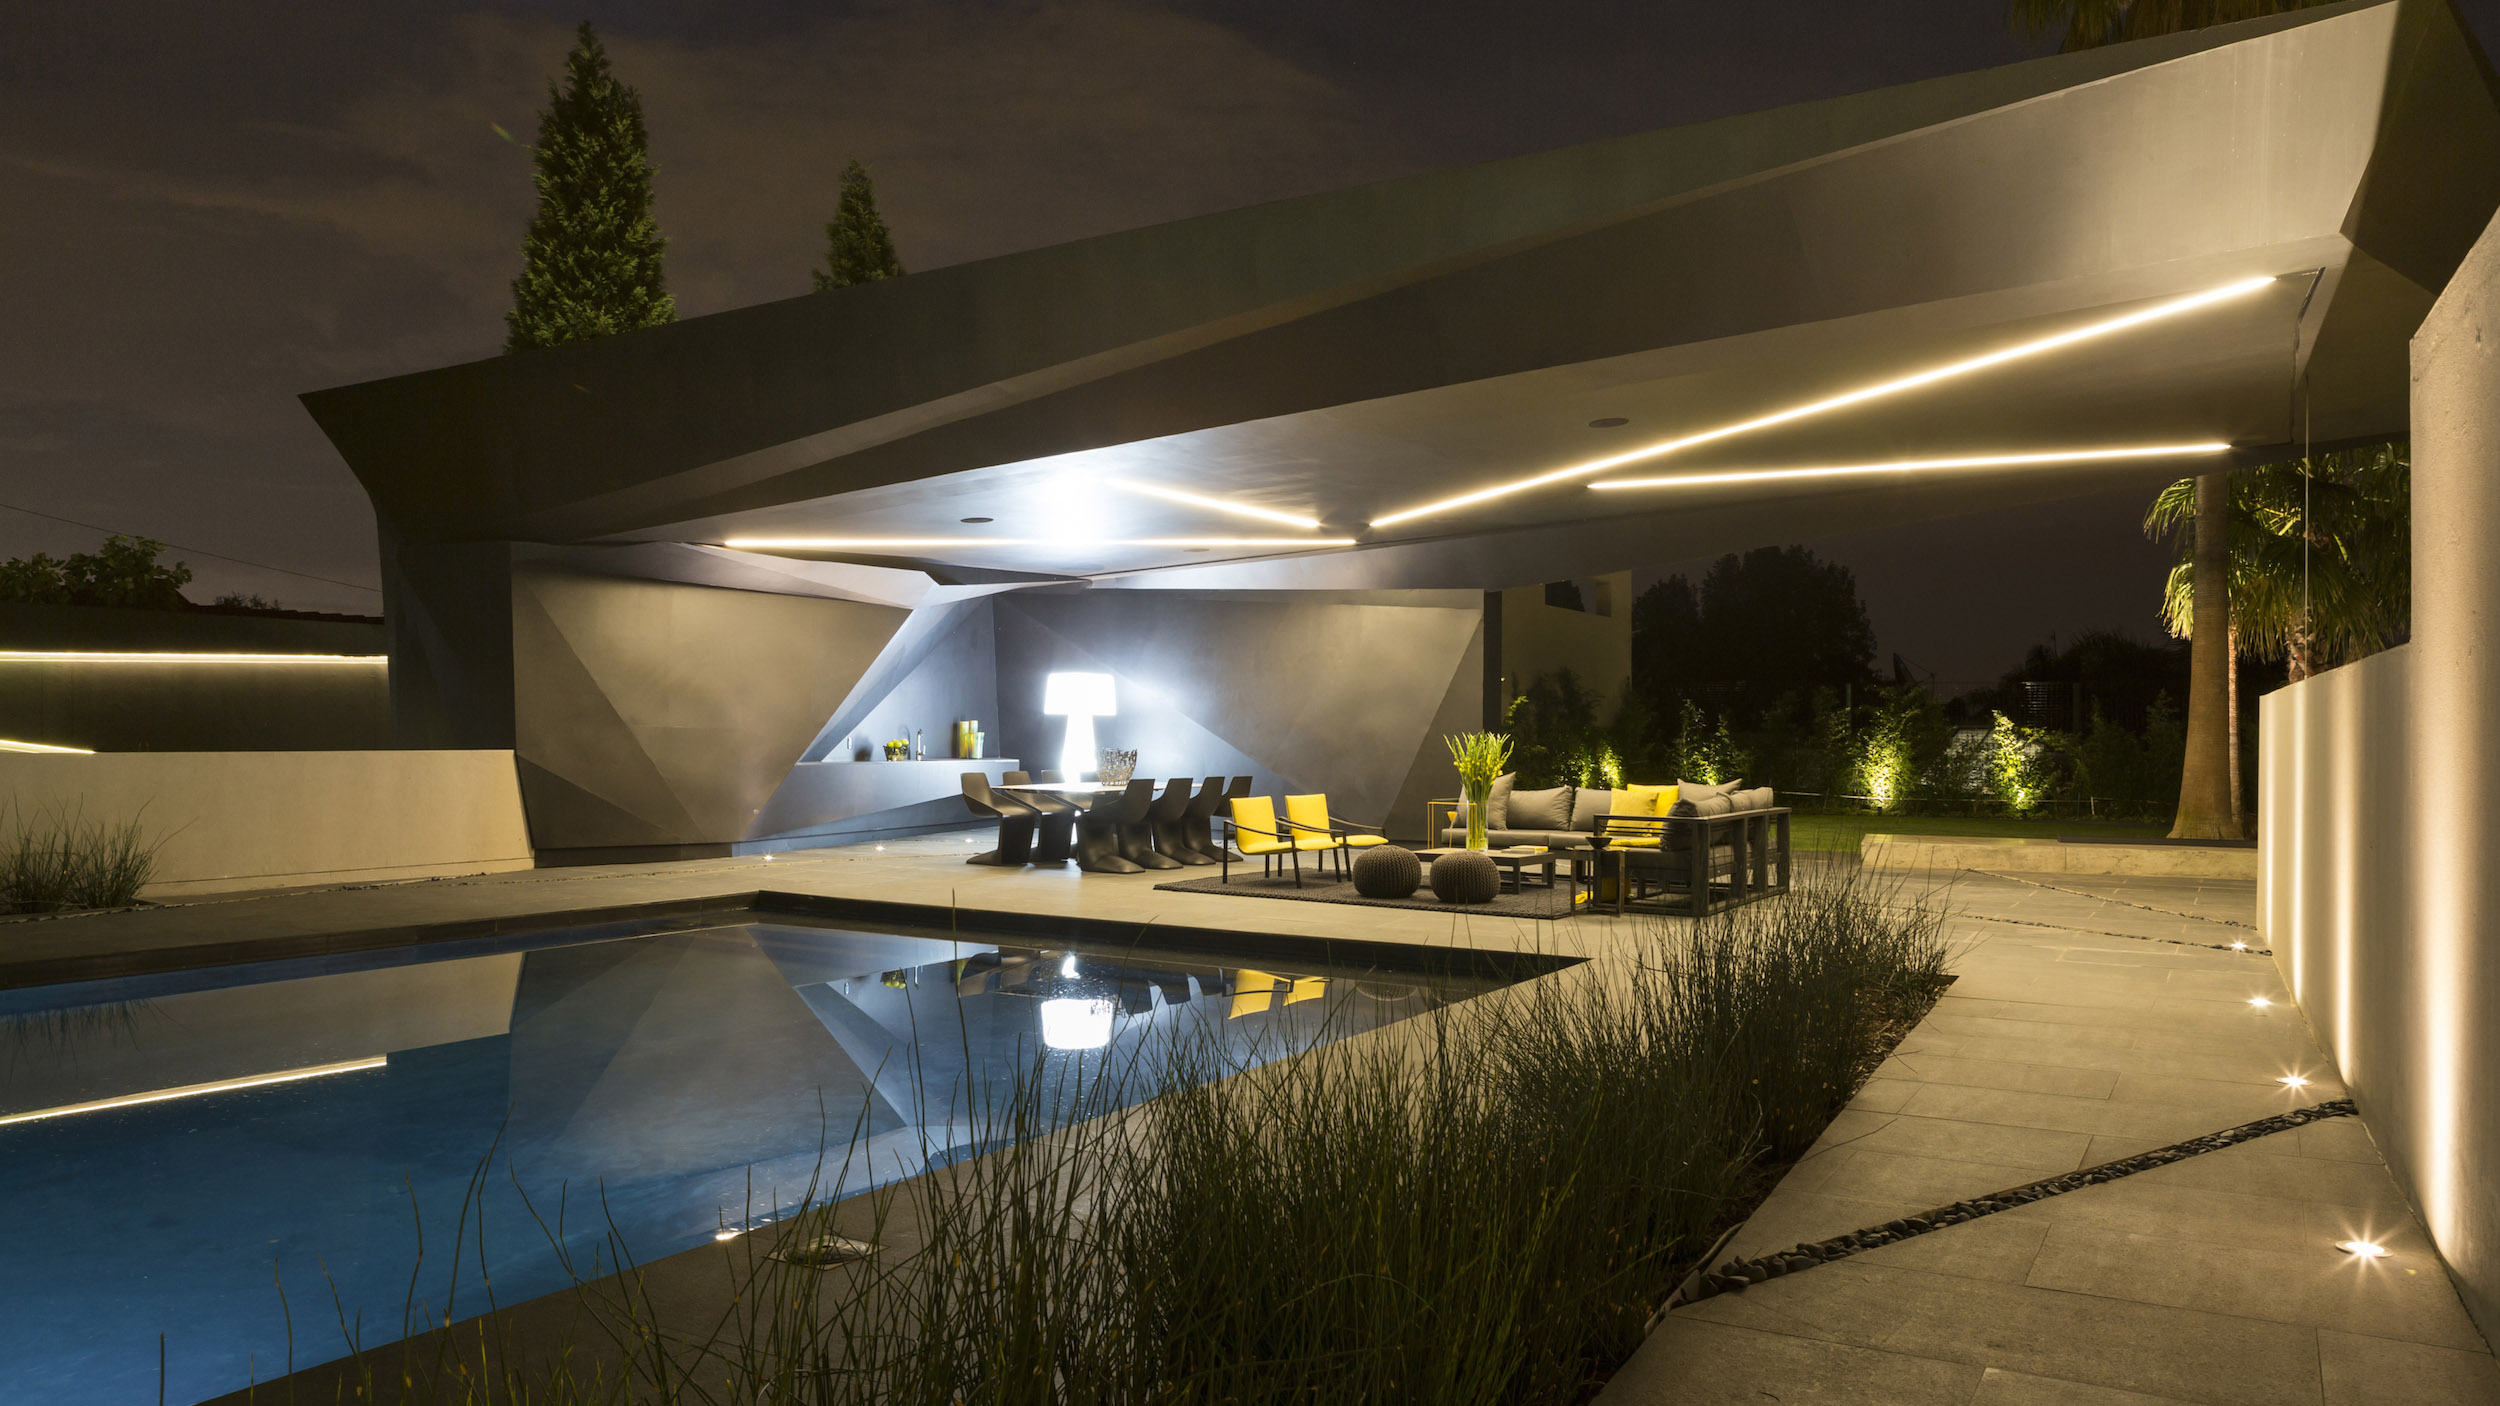 Kloof Road Masterpiece House in Johannesburg by Nico van der Meulen Architects-10